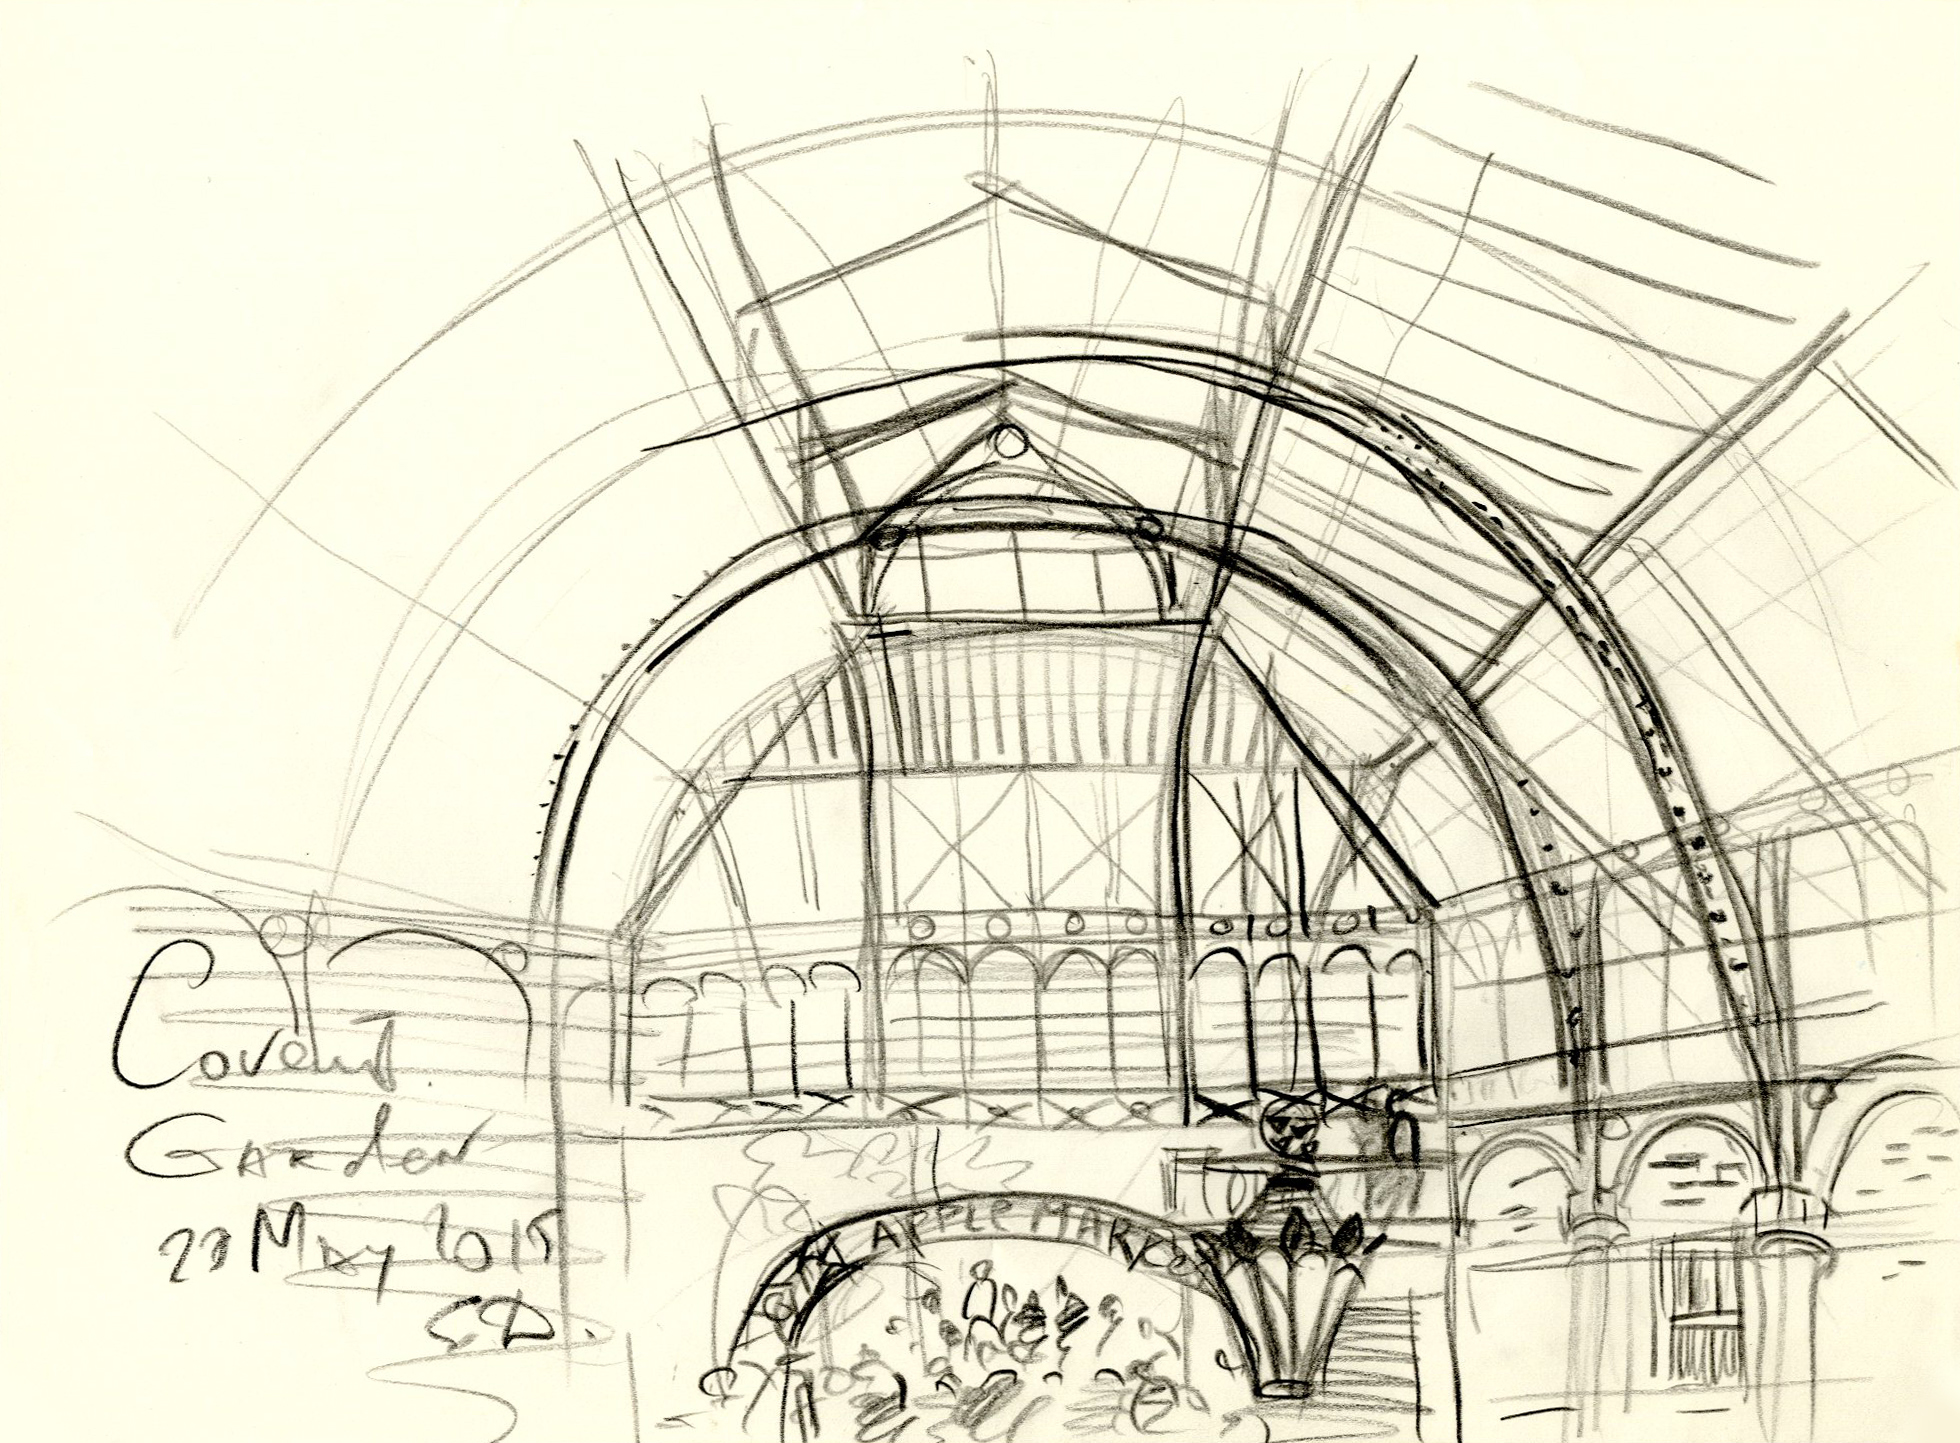 Covent garden from Jamy Oliver's